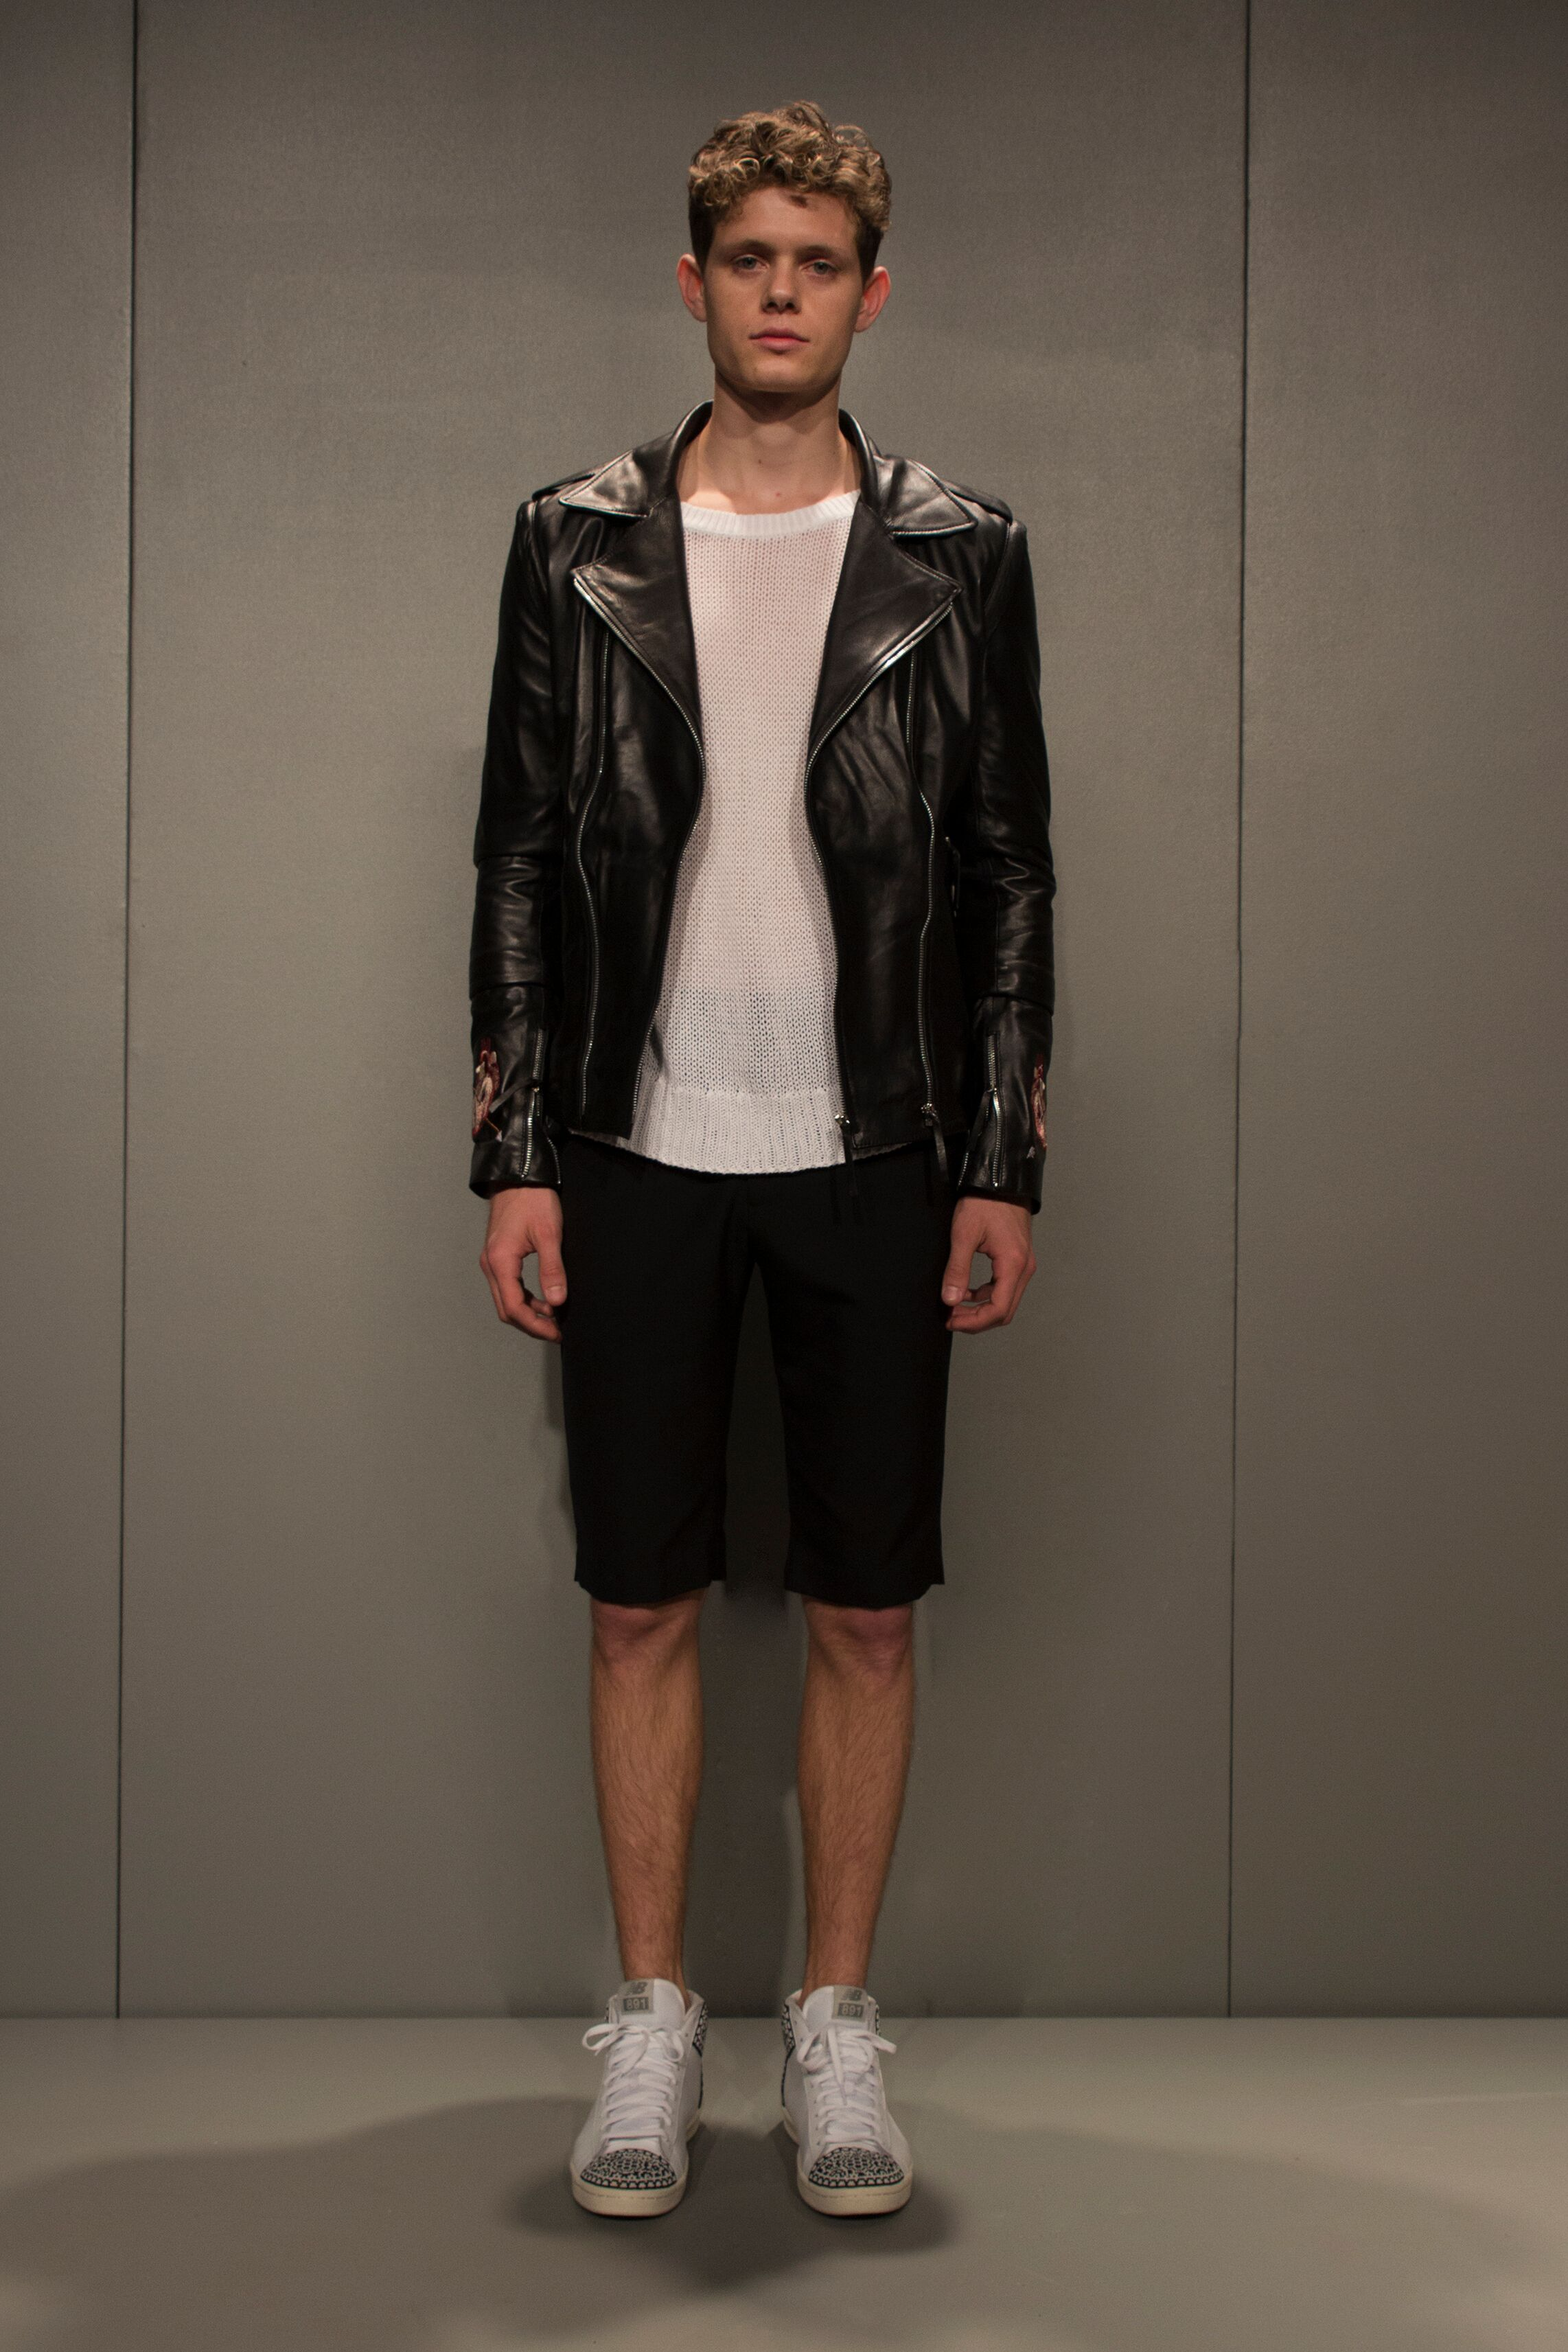 ricardo seco, nyfwm, new york fashion week, new york fashion week mens, ss16